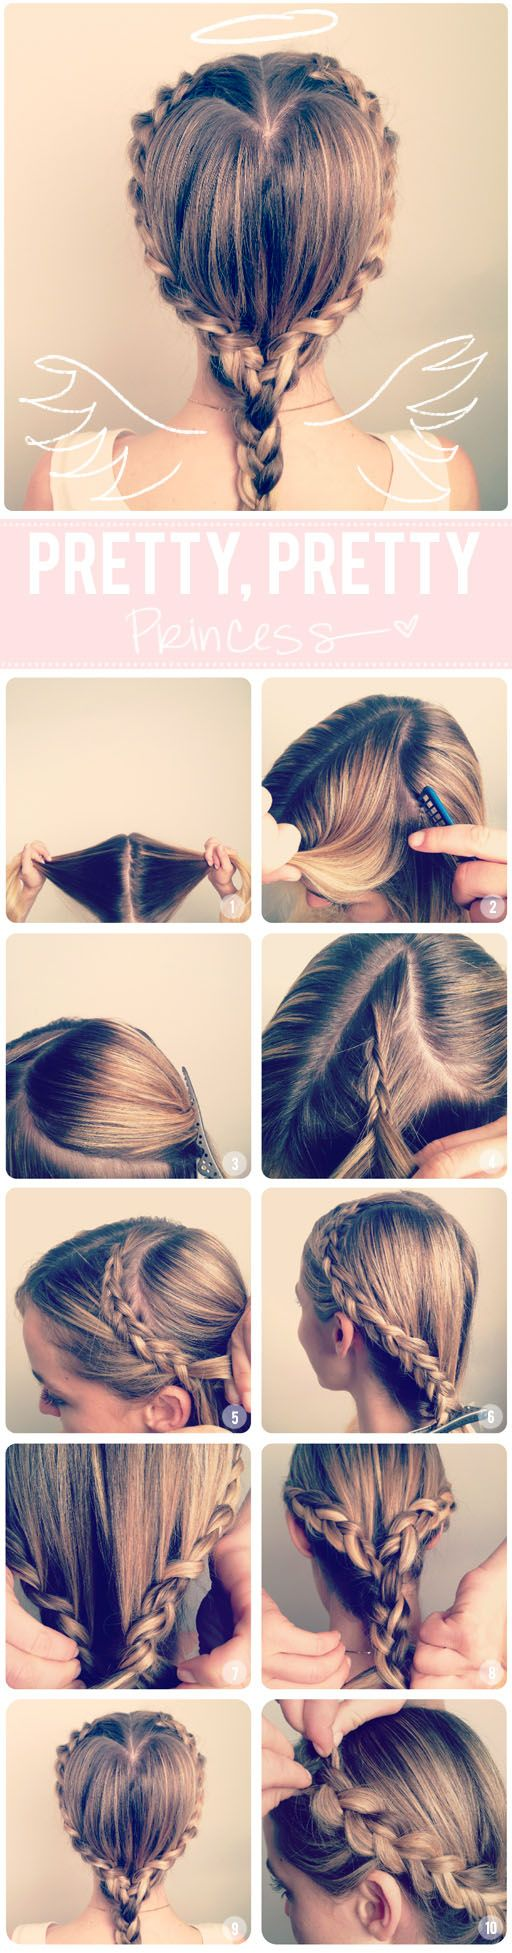 DIY Heart Braid Up-do Hairstyle ♥